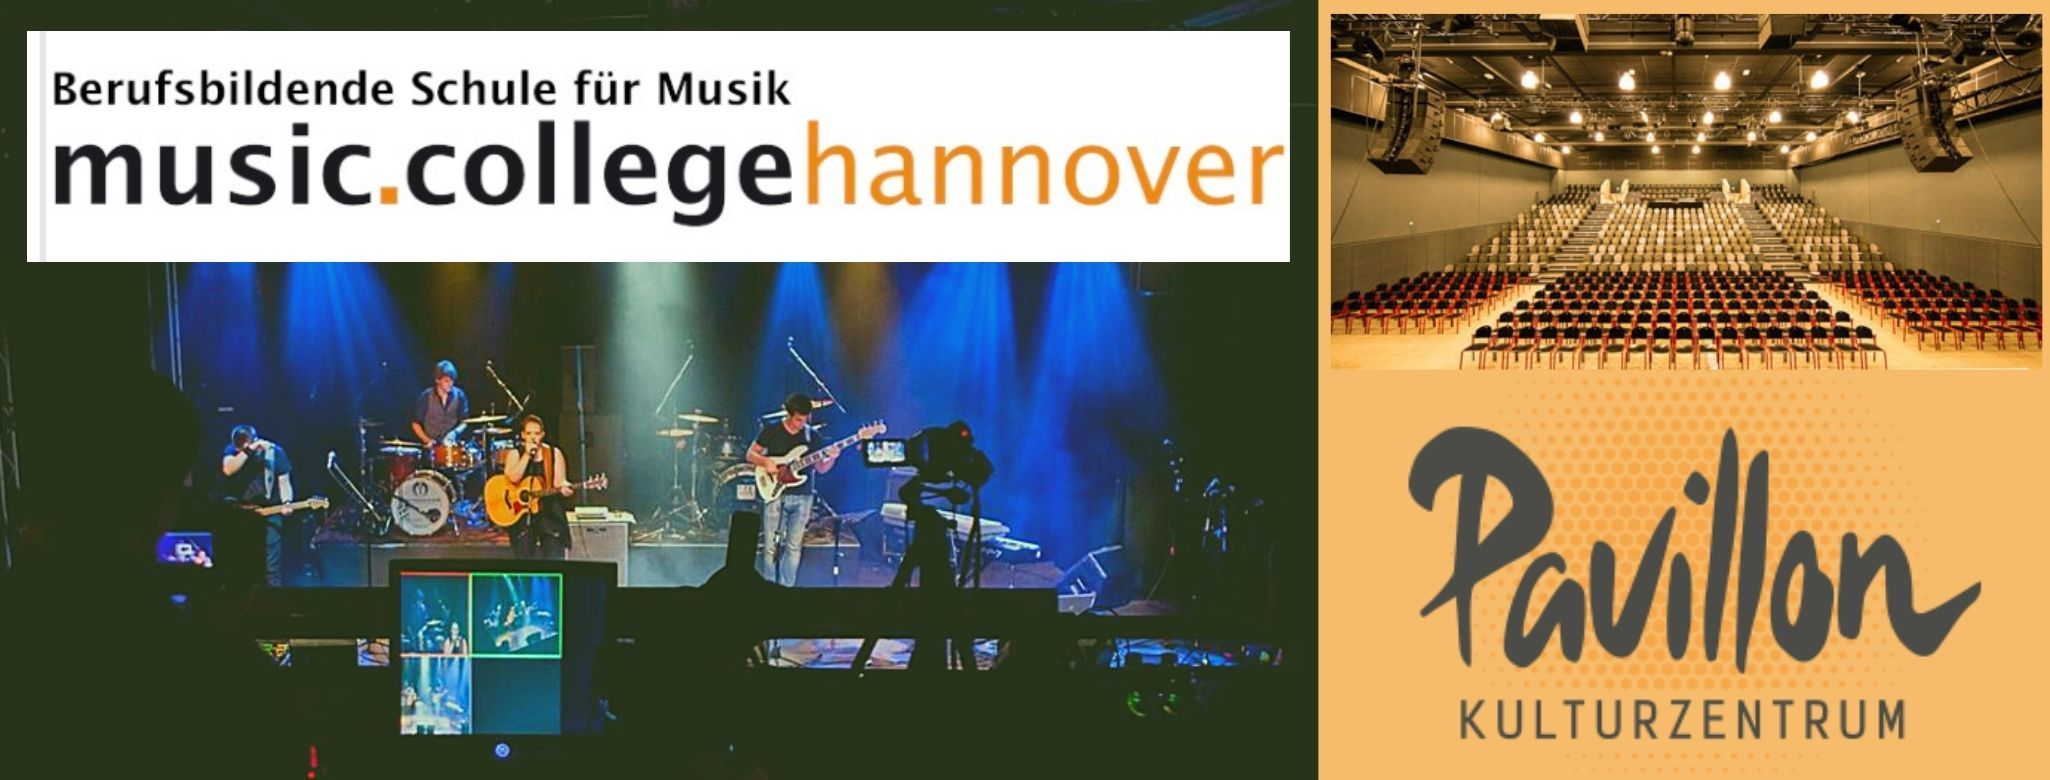 c Music college hannover